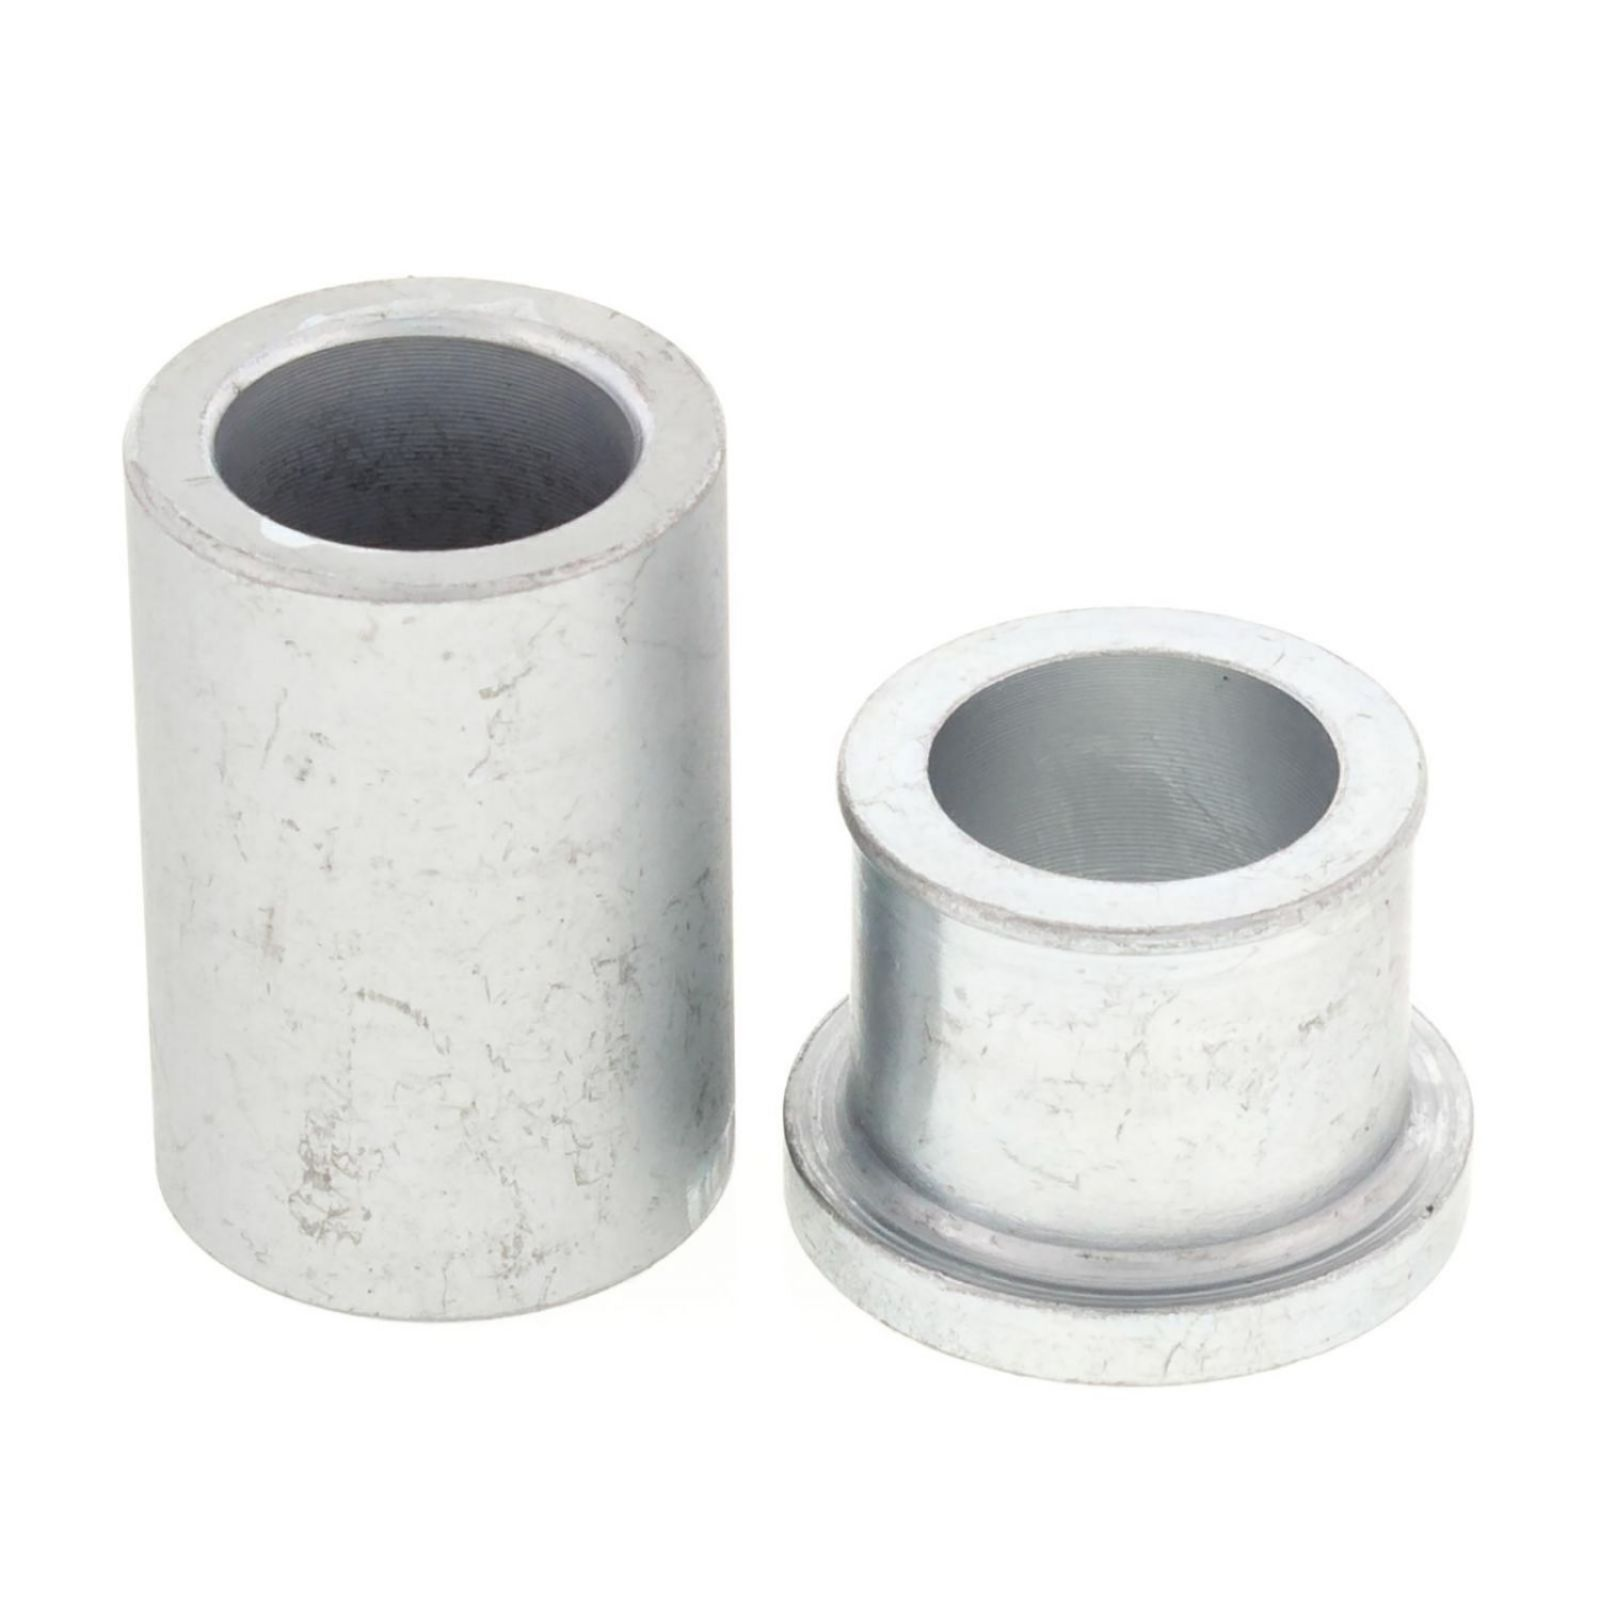 WRP Front Wheel Spacer Kits - WRP111006 image